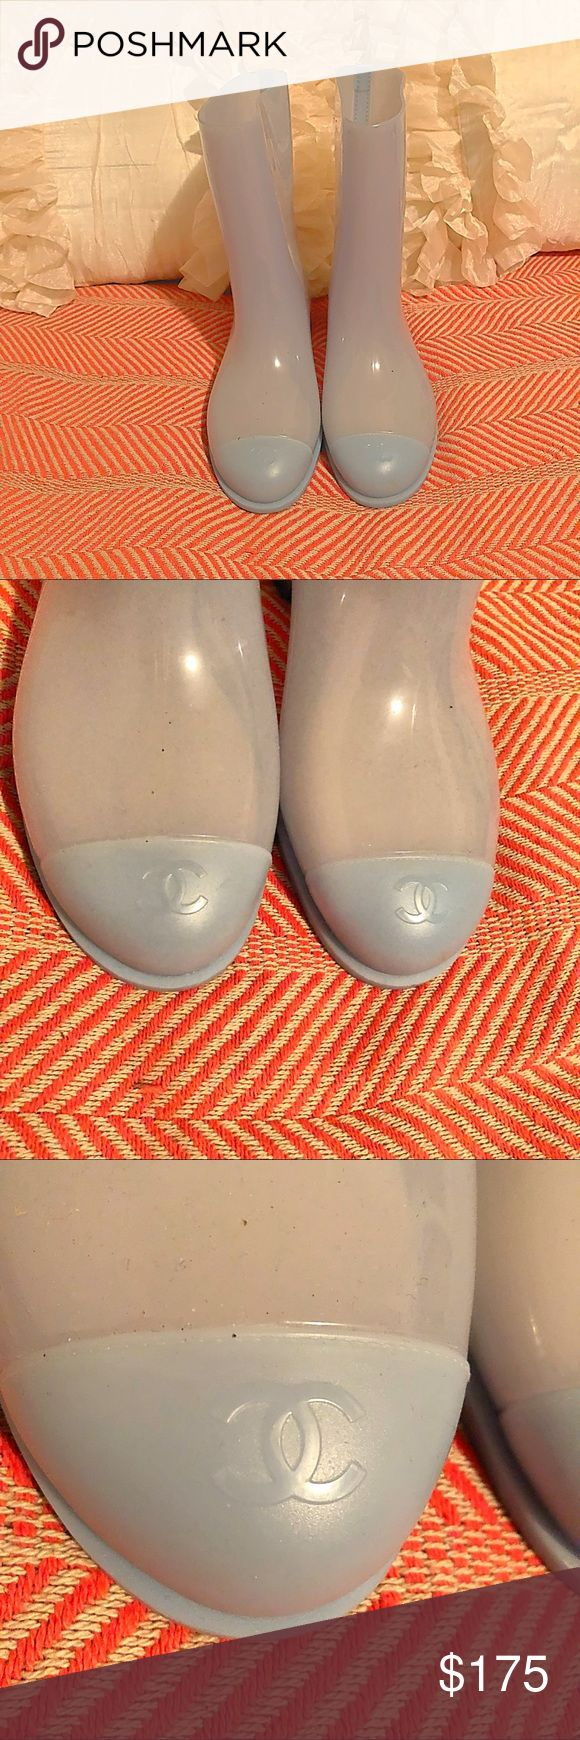 SALE💥AUTHENTIC Chanel pastel blue rainboots boots Authentic pastel blue rainboots by Chanel · size 39 ·general wear on soles · otherwise great condition  Lots of love left! Super cute but my feet are expanding. My loss, your gain! CHANEL Shoes Winter & Rain Boots